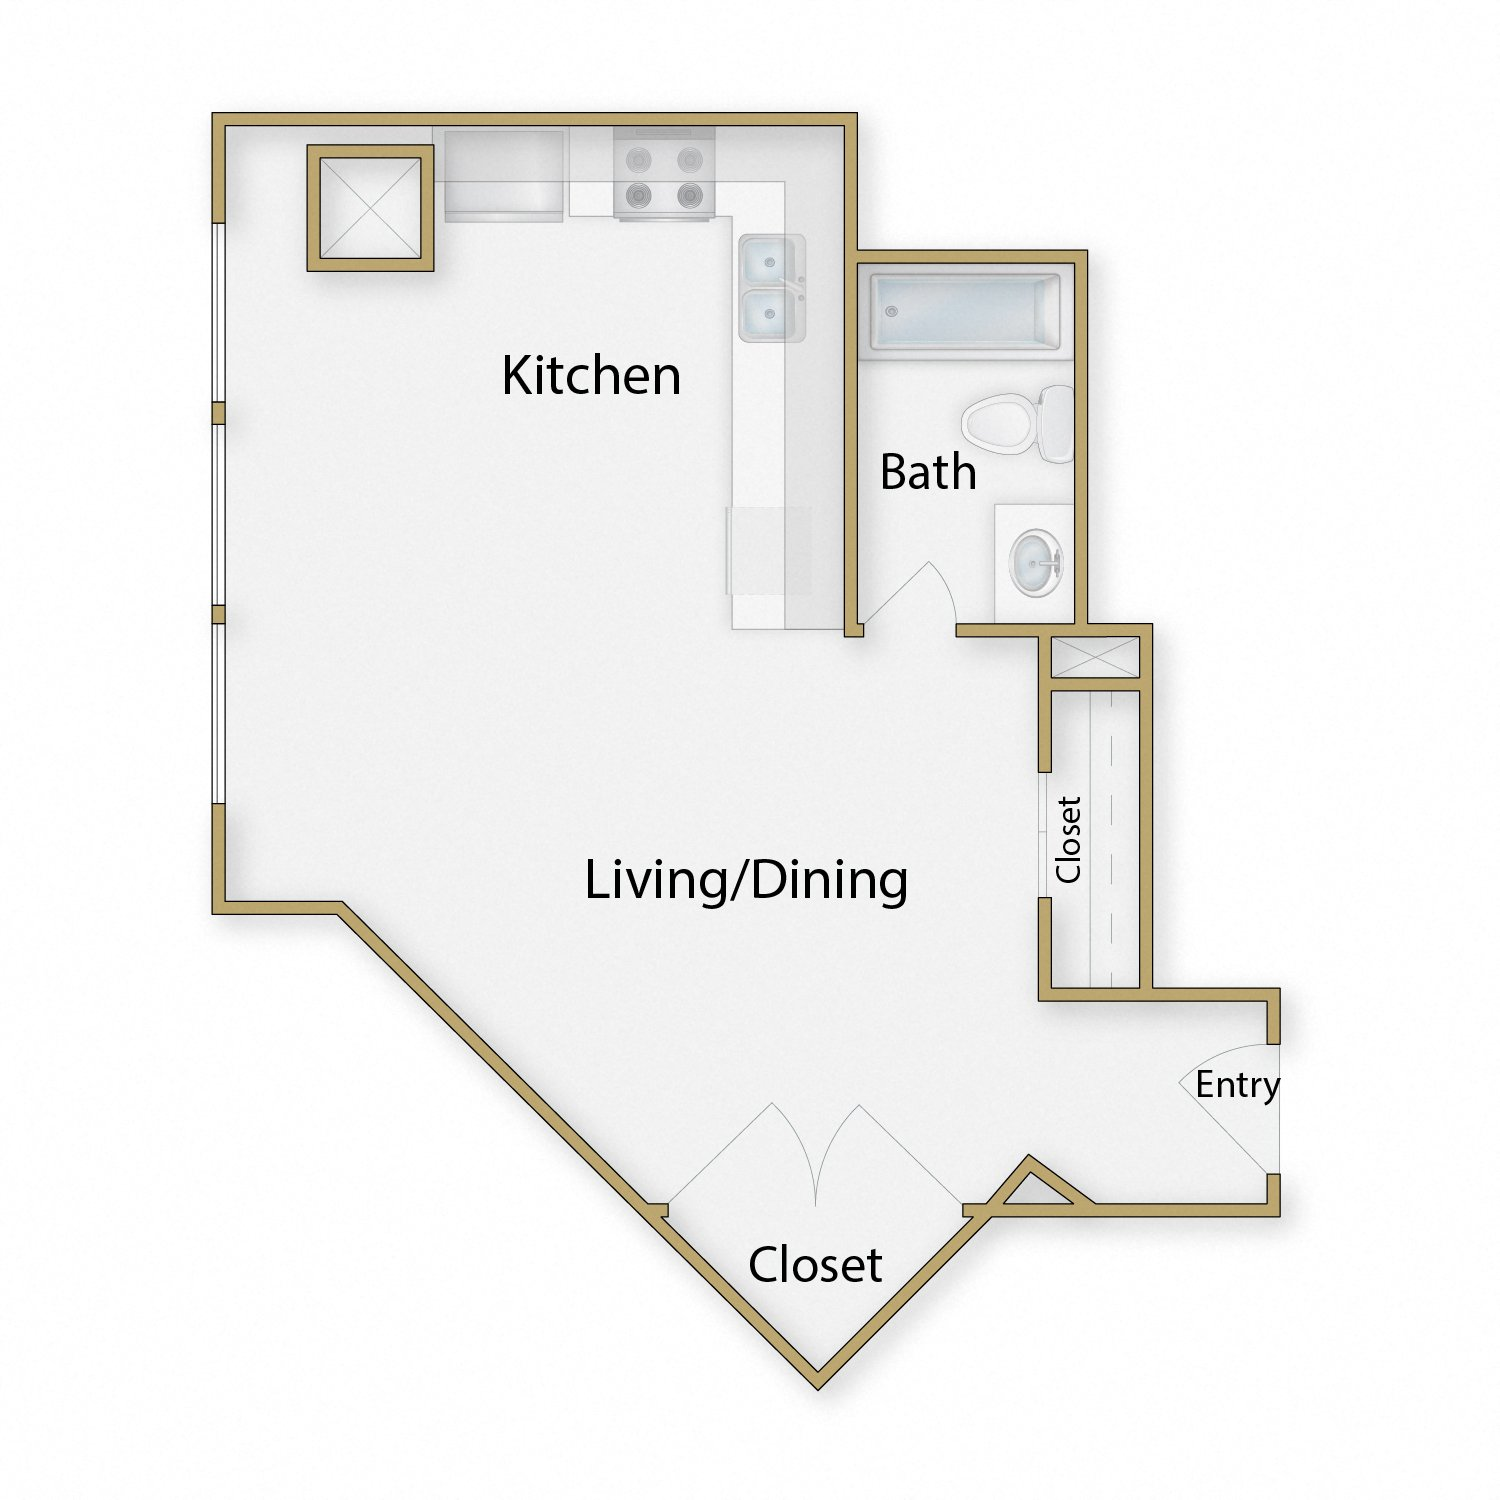 Nobhill floor plan diagram. Studio apartment with an open kitchen dining and living area and one bathroom.